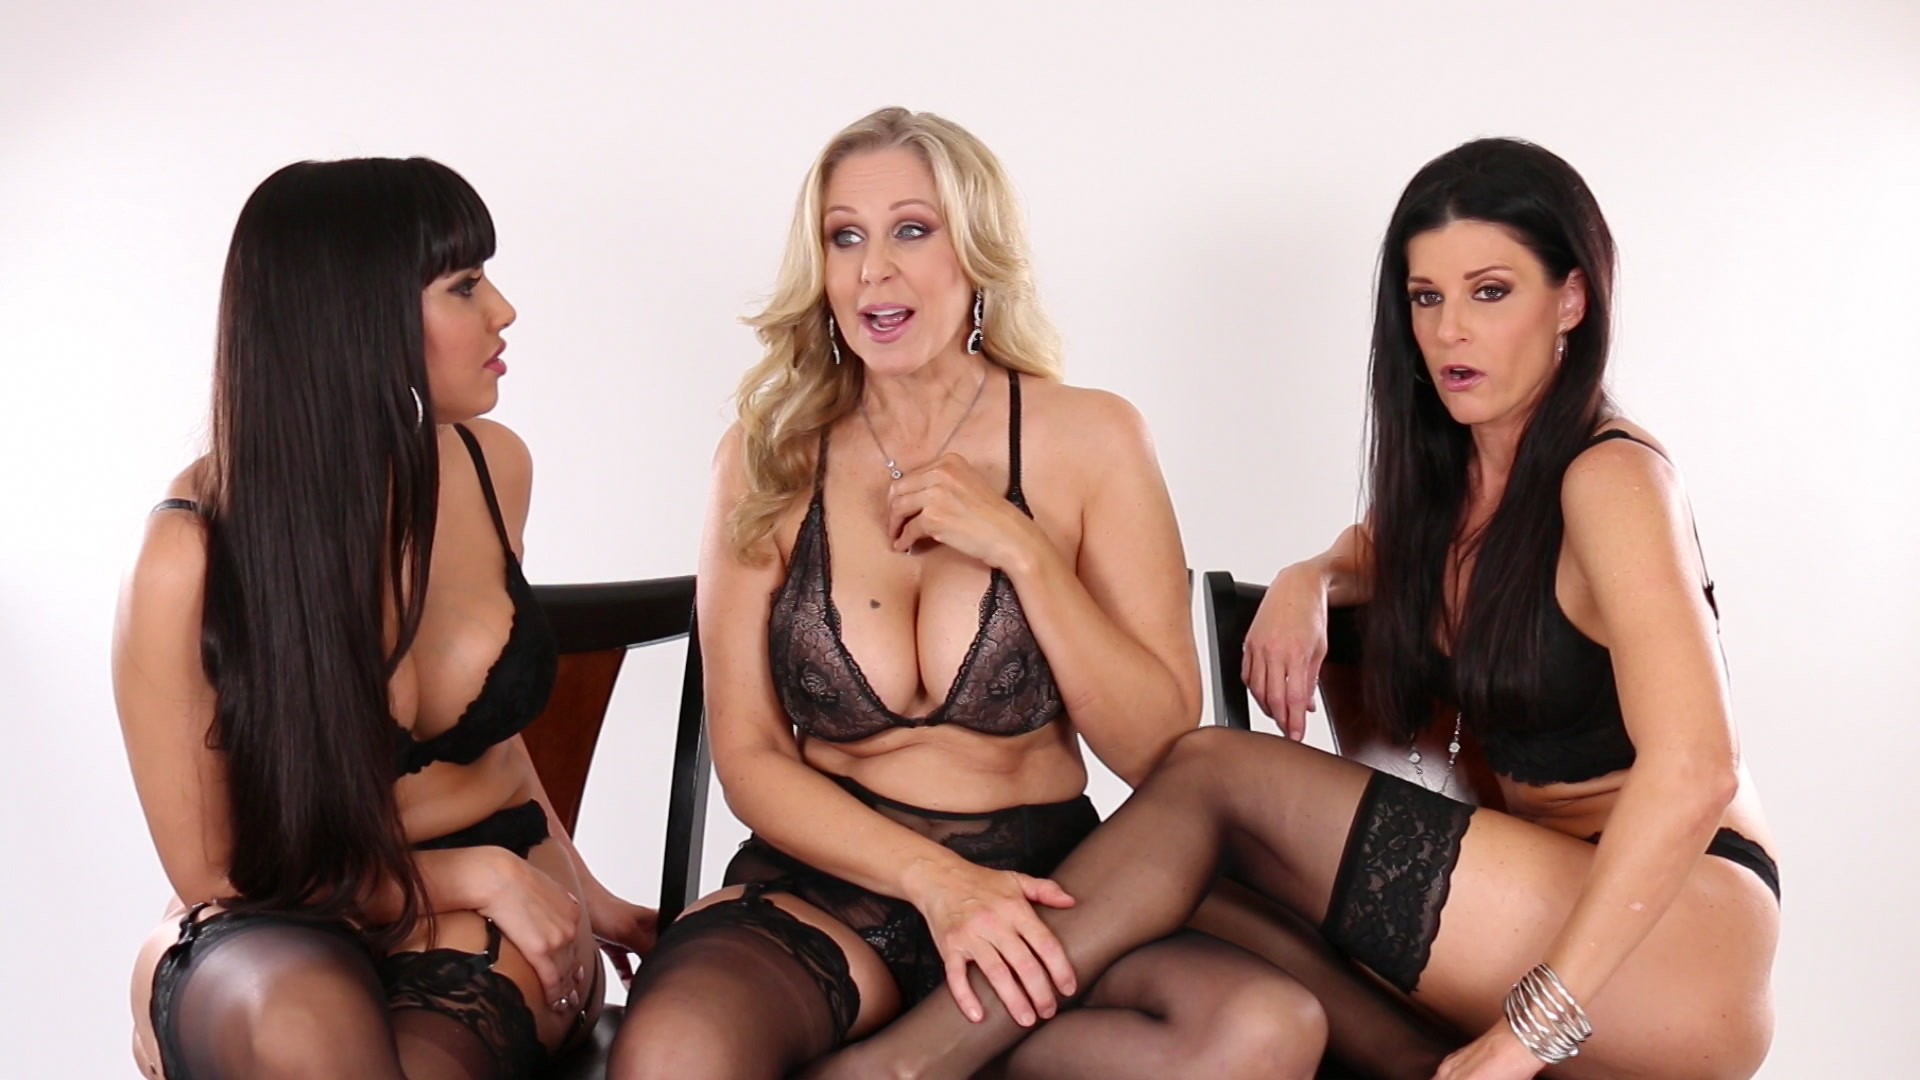 Scene with Julia Ann, India Summer and Mercedes Carrera - image 4 out of 20